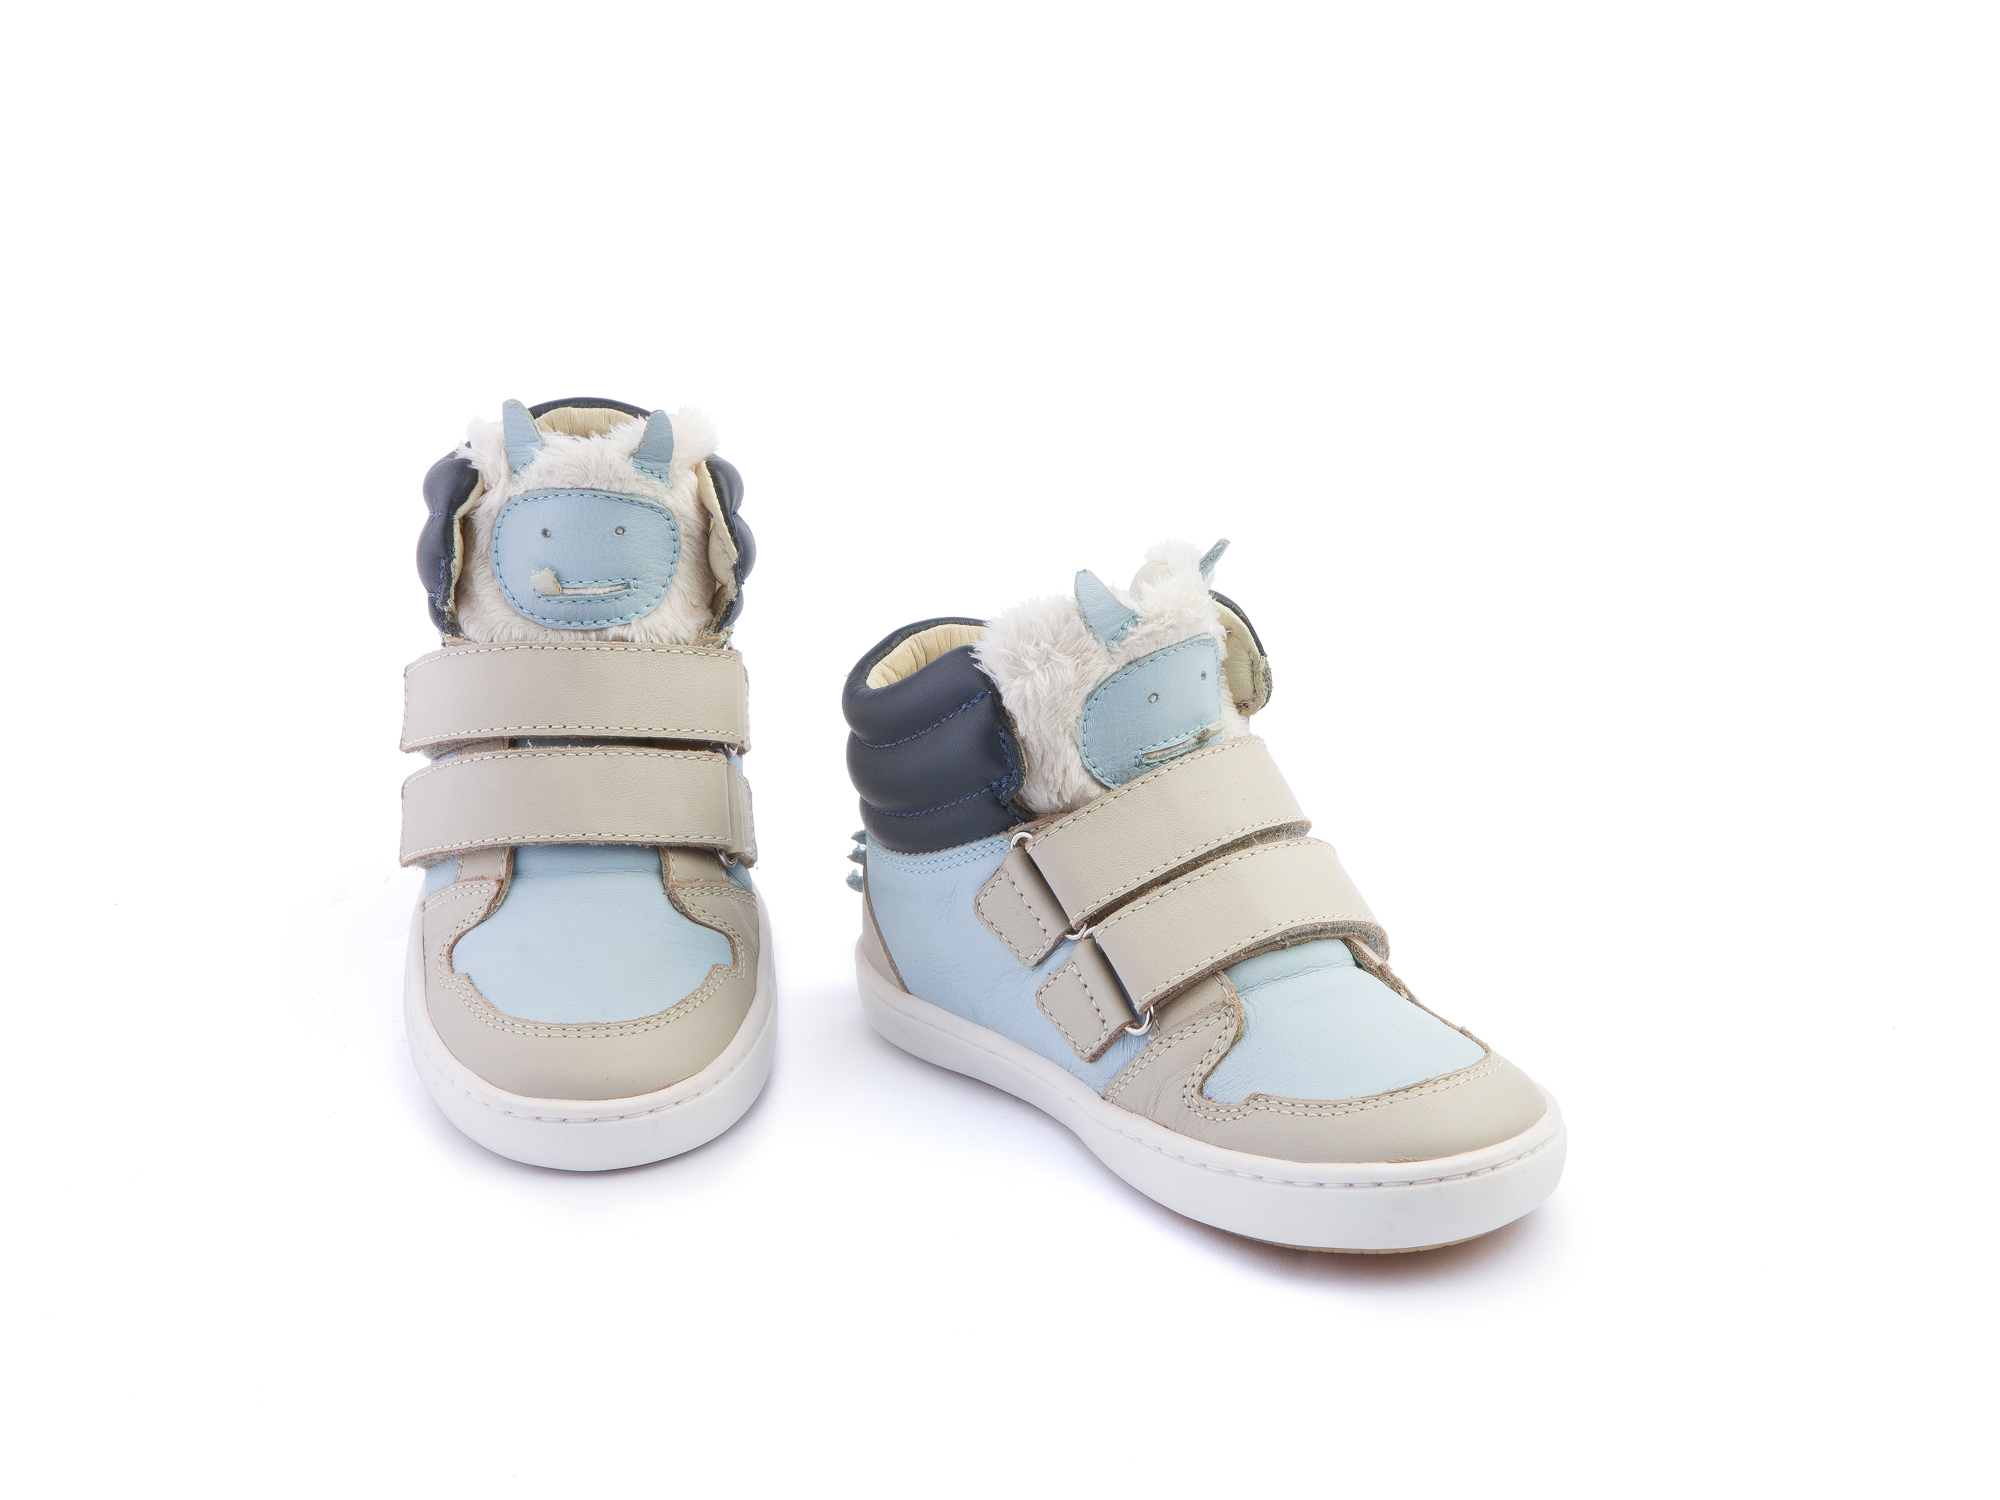 Bota Little Monster Pumice/ Baby Blue Toddler 2 à 4 anos - 1